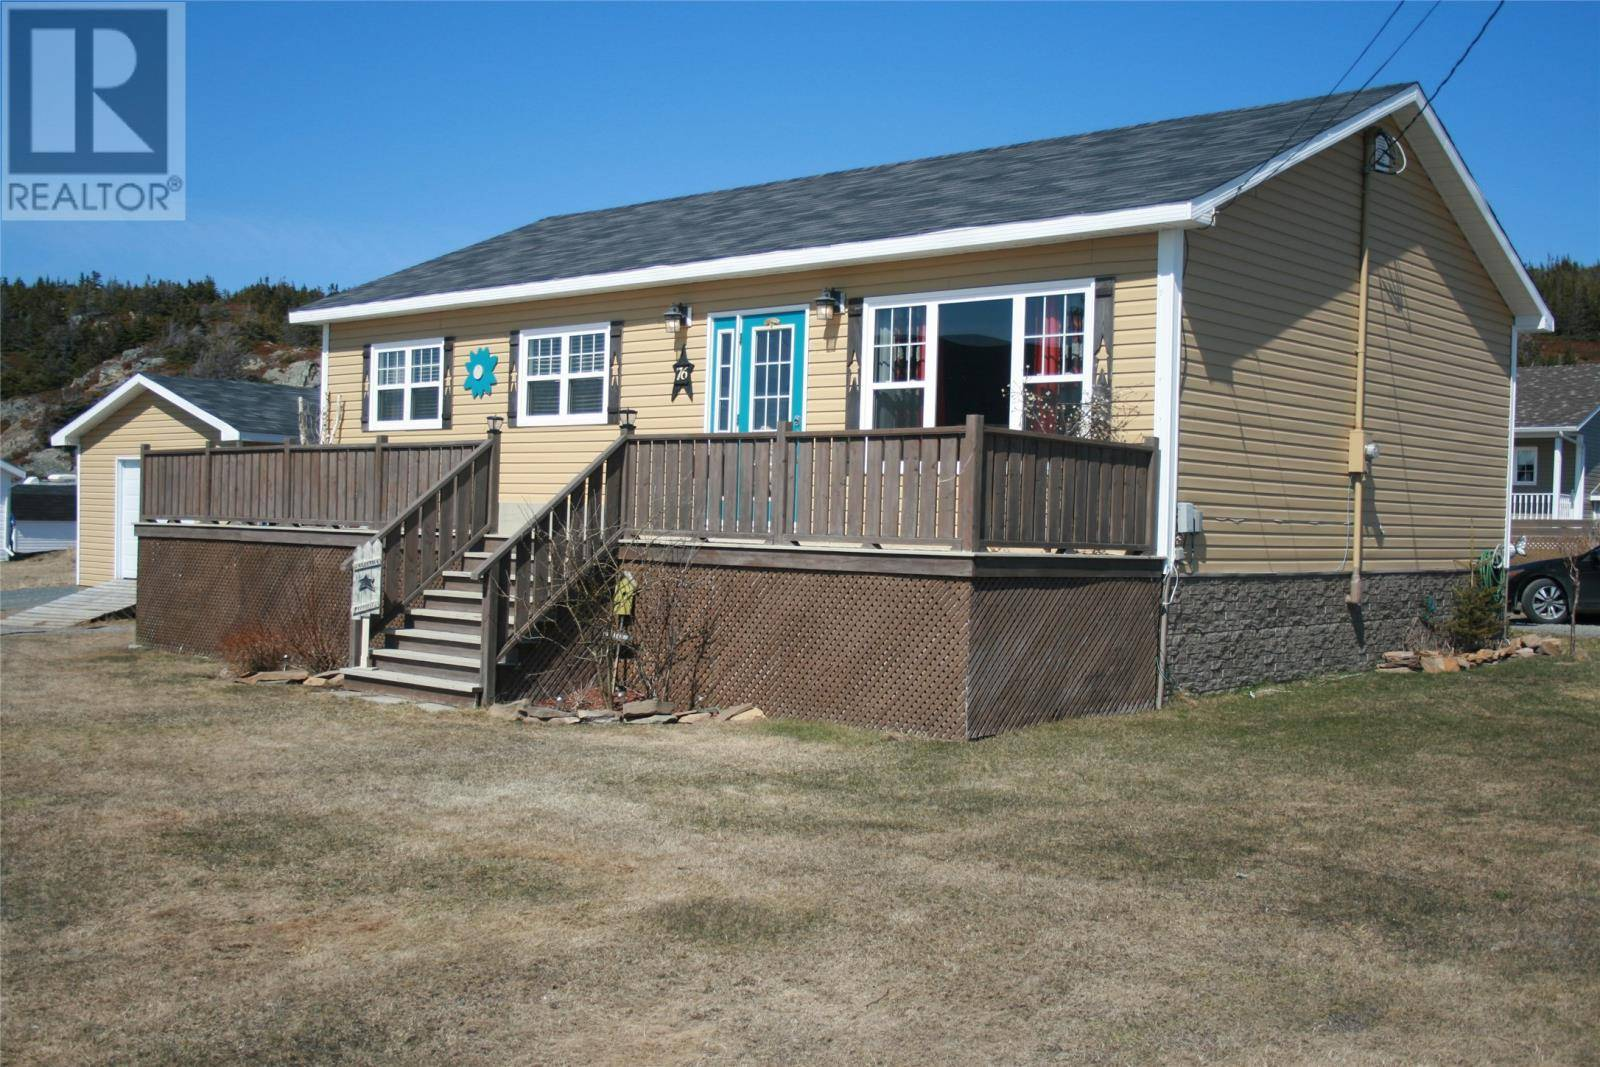 House for sale at 76 Upper Jenkins Cove Rd Twillingate Newfoundland - MLS: 1213166